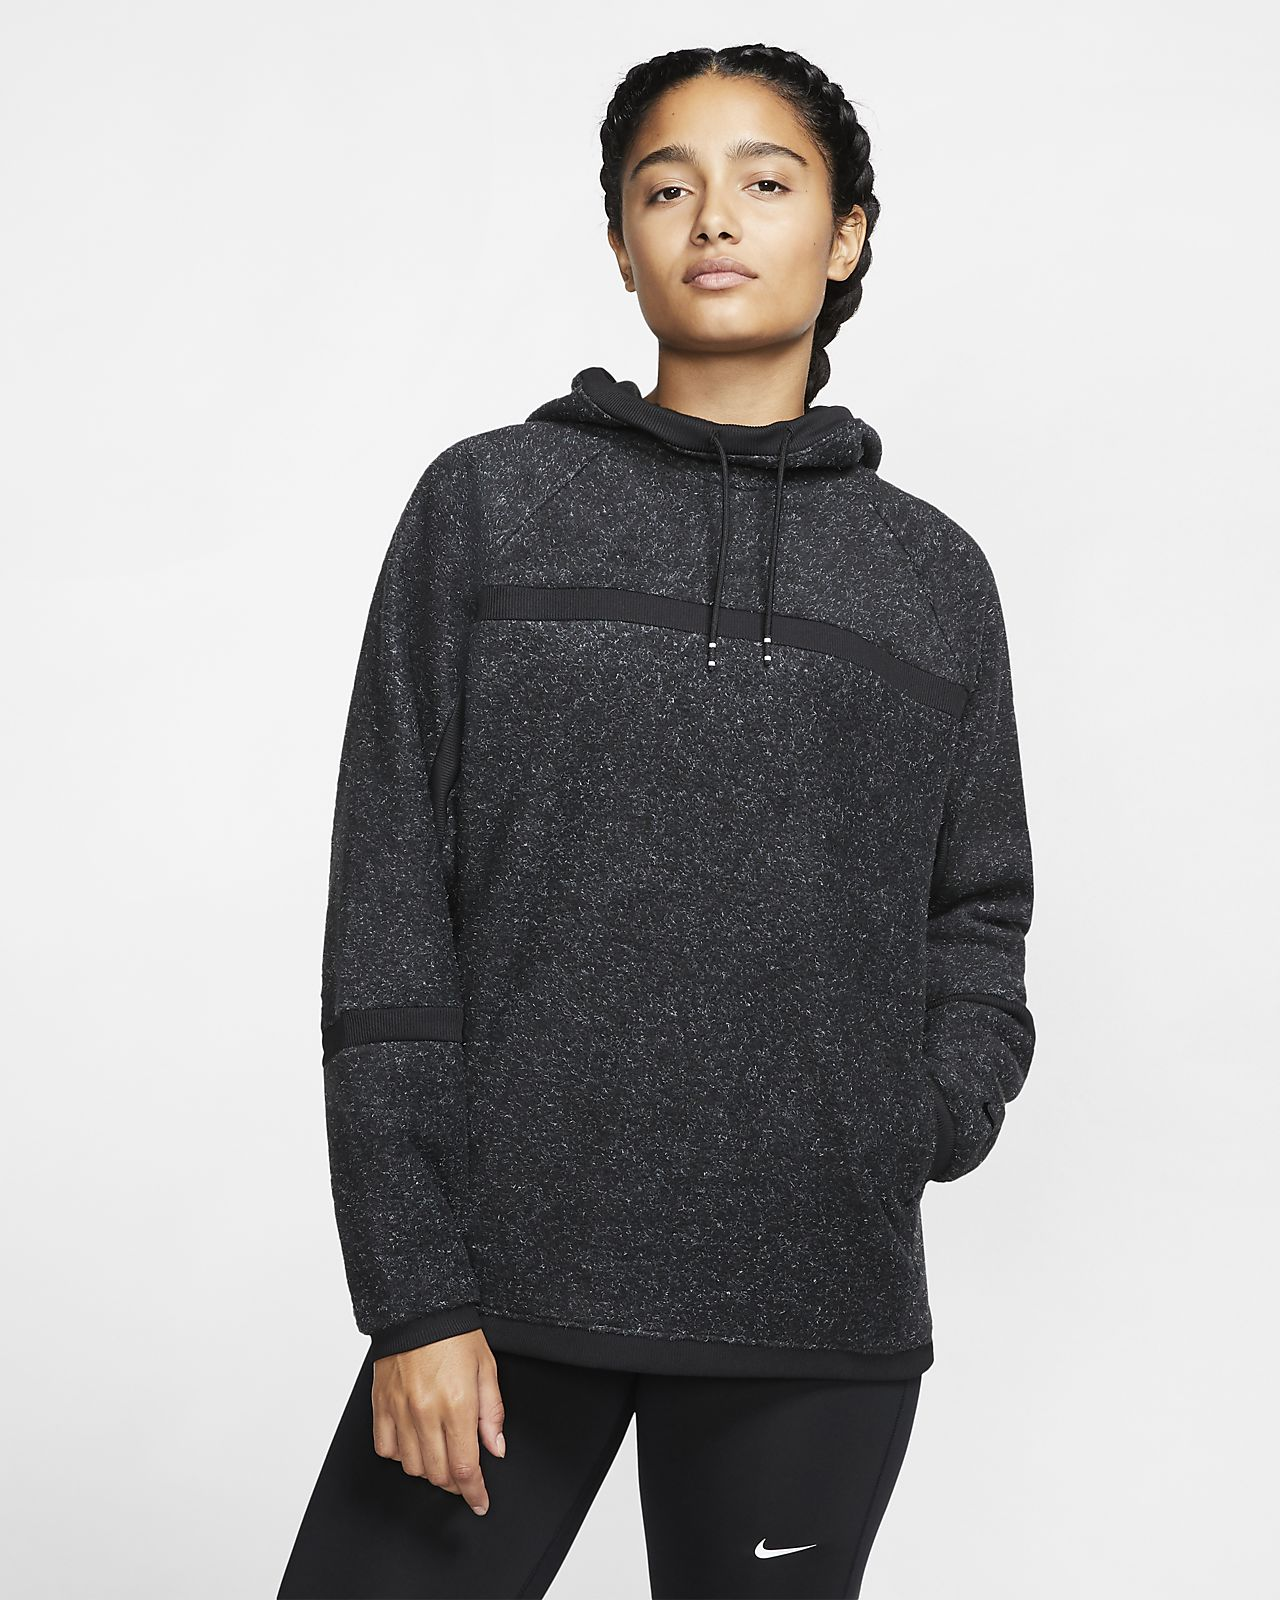 Nike City Ready Women's 14 Zip Fleece Training Sweatshirt